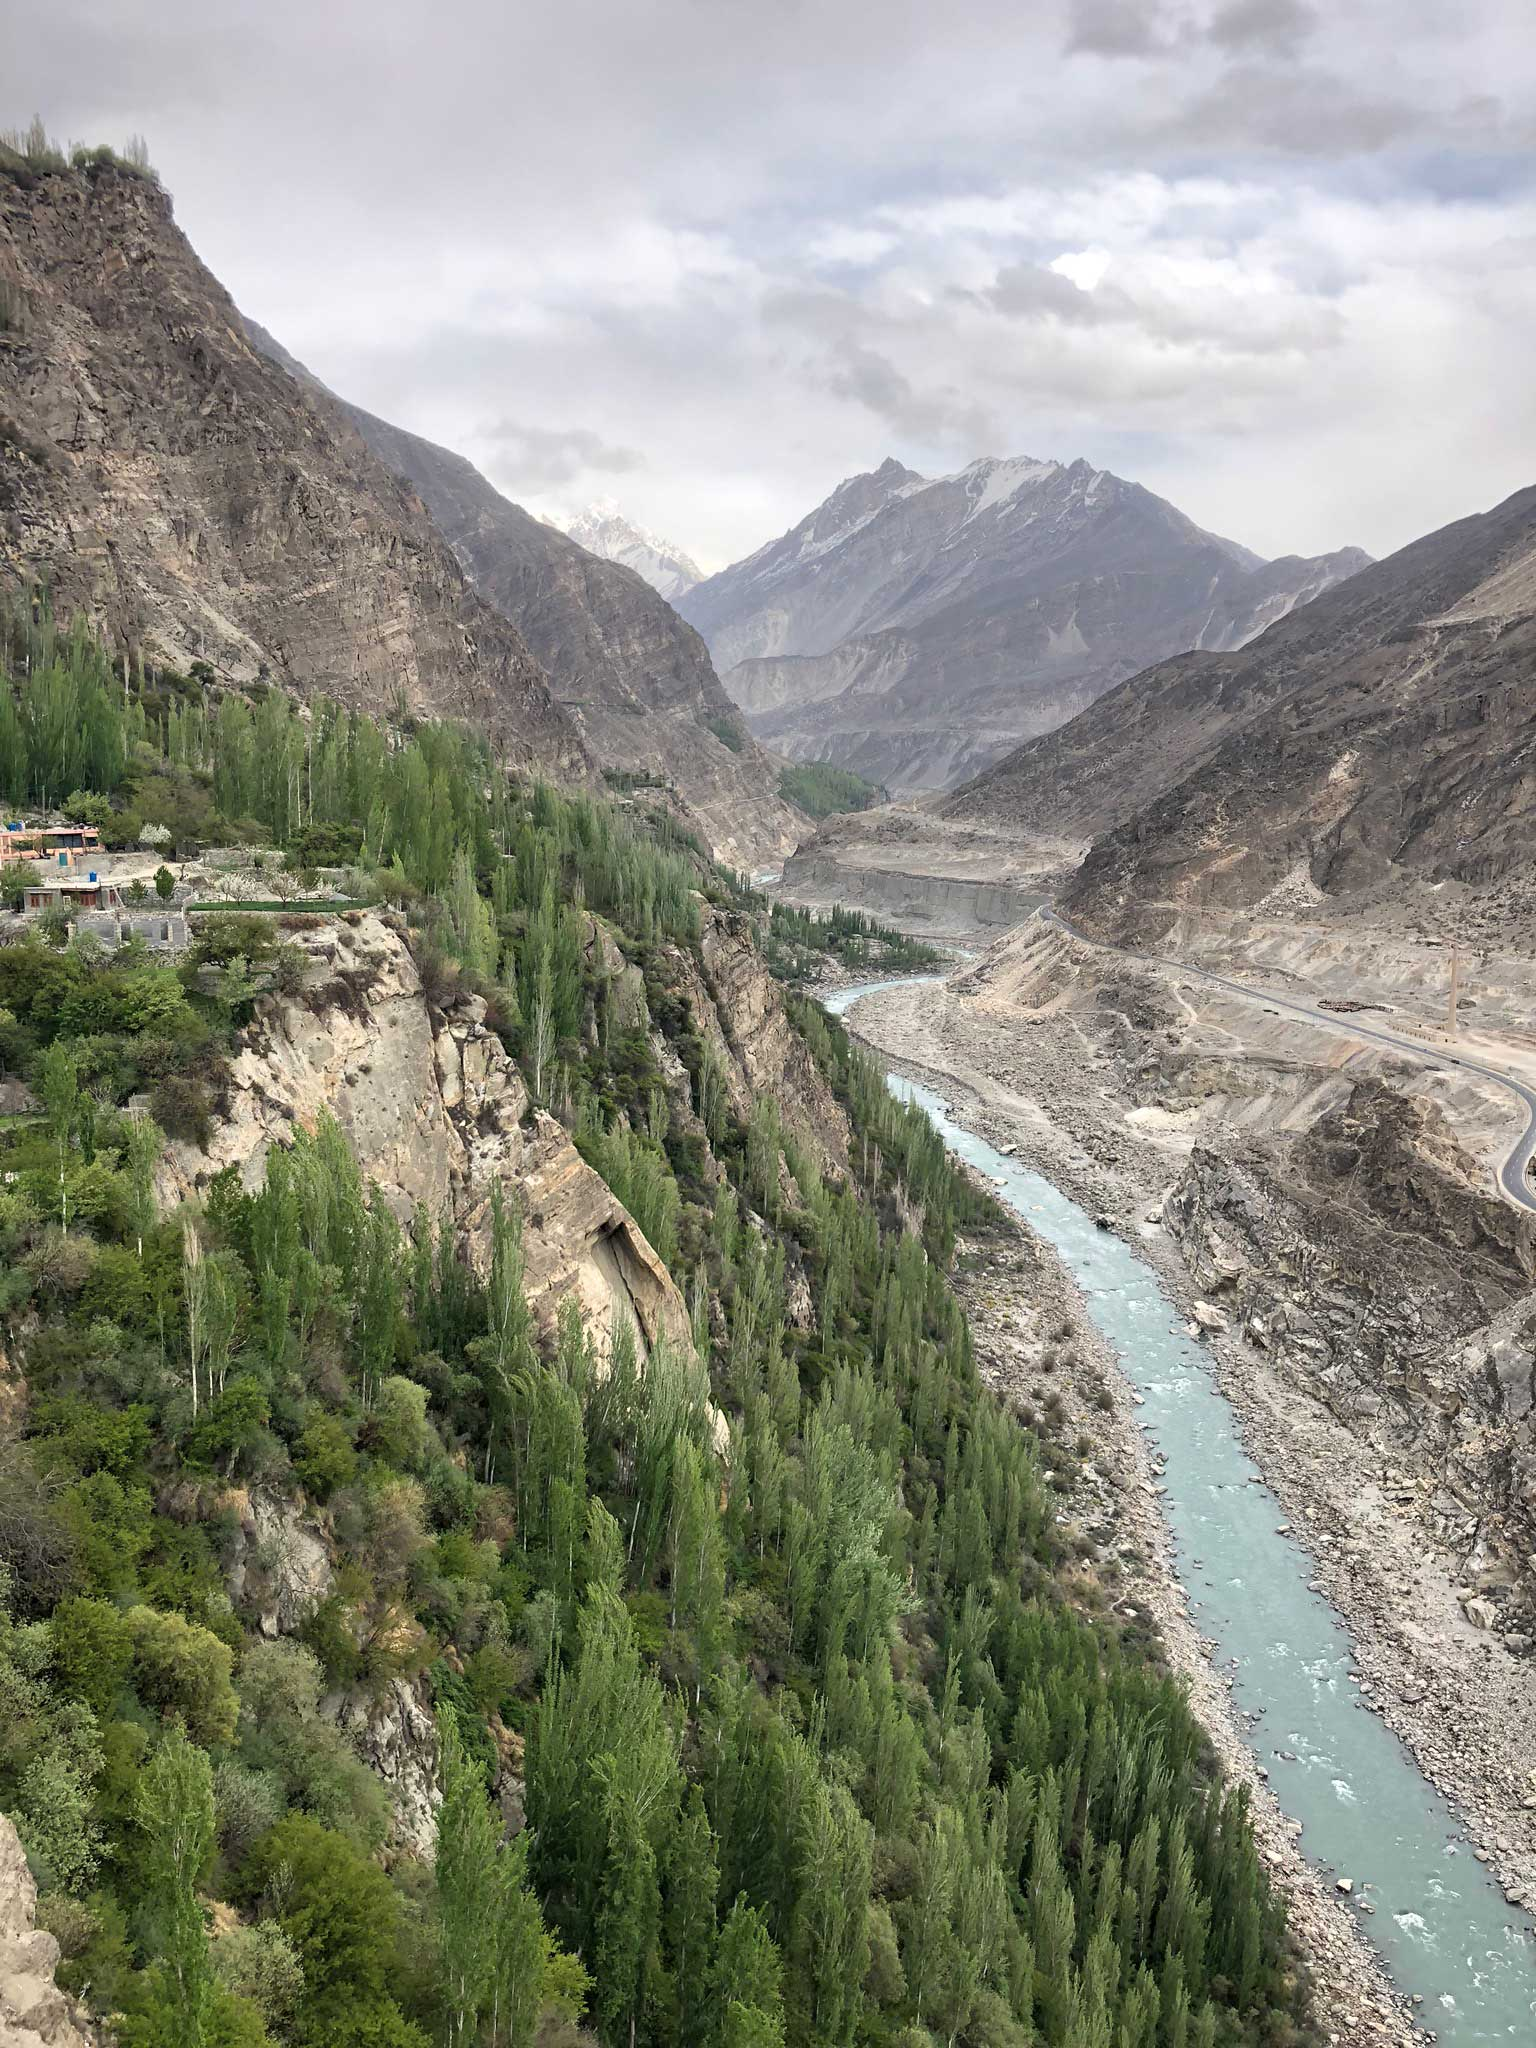 Hunza River flowing through Karimabad in Pakistan. (Dur e Aziz Amna)